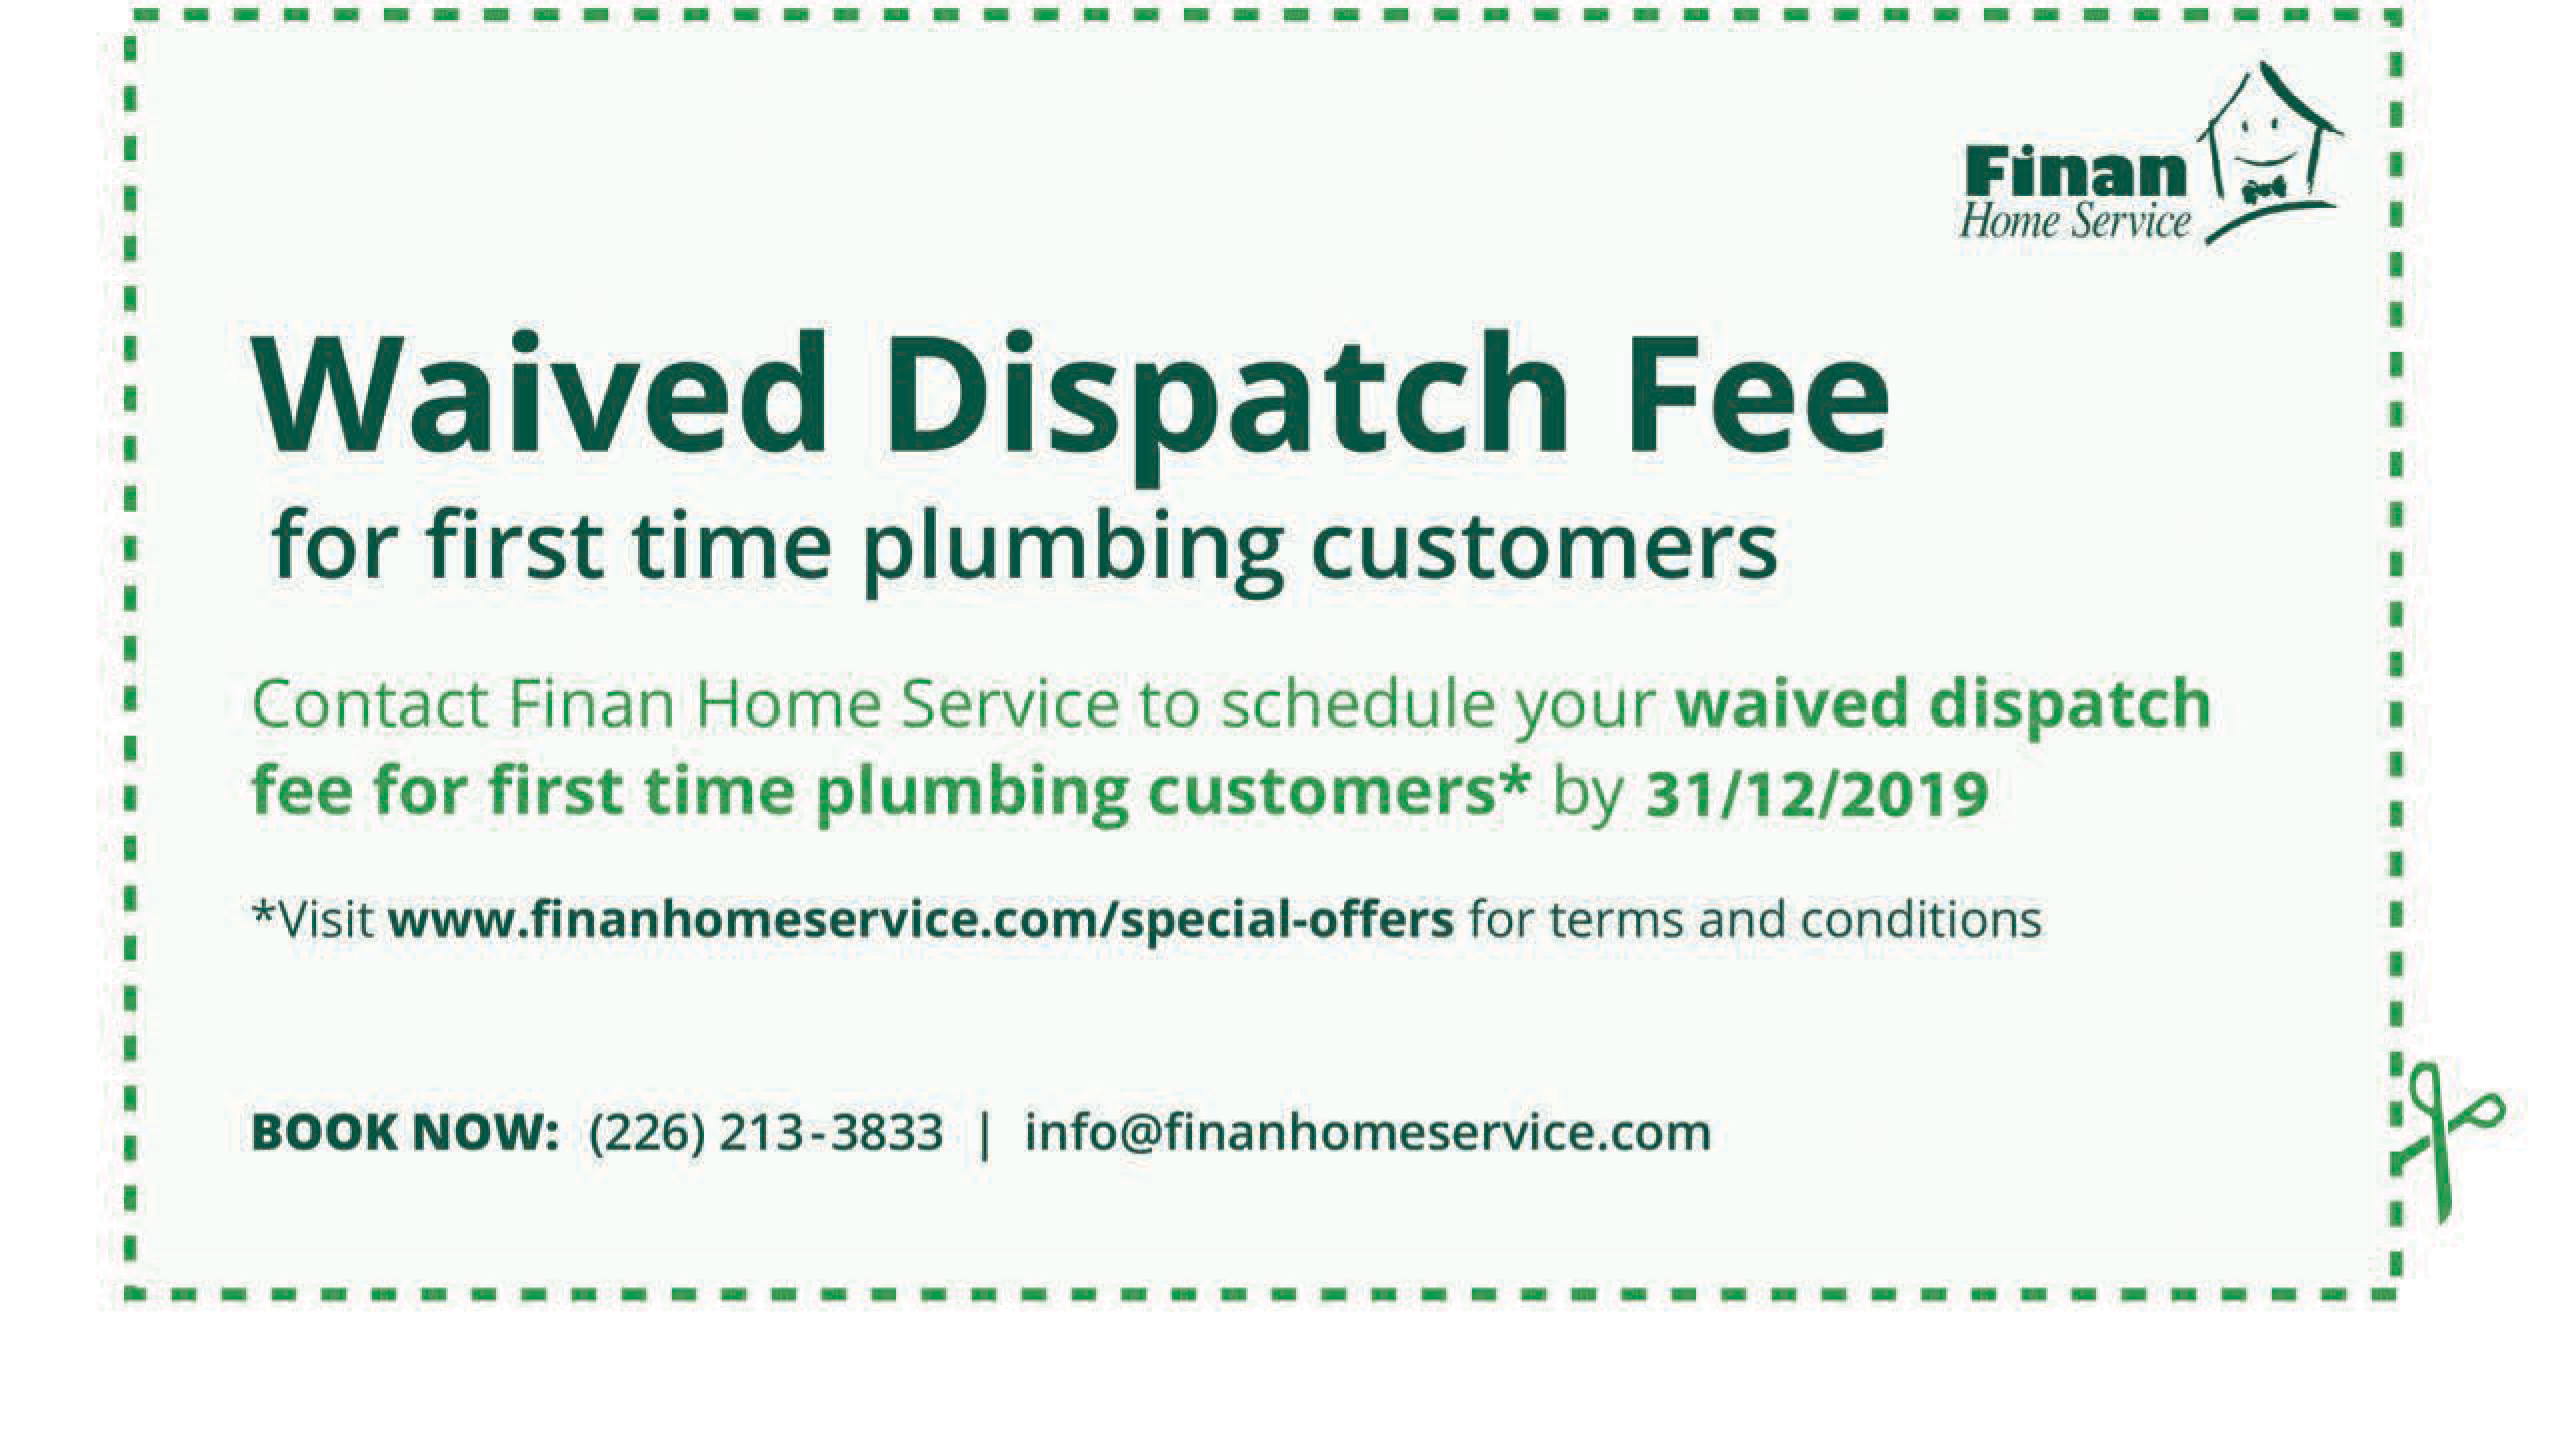 Waived dispatch fee for first time plumbing customers